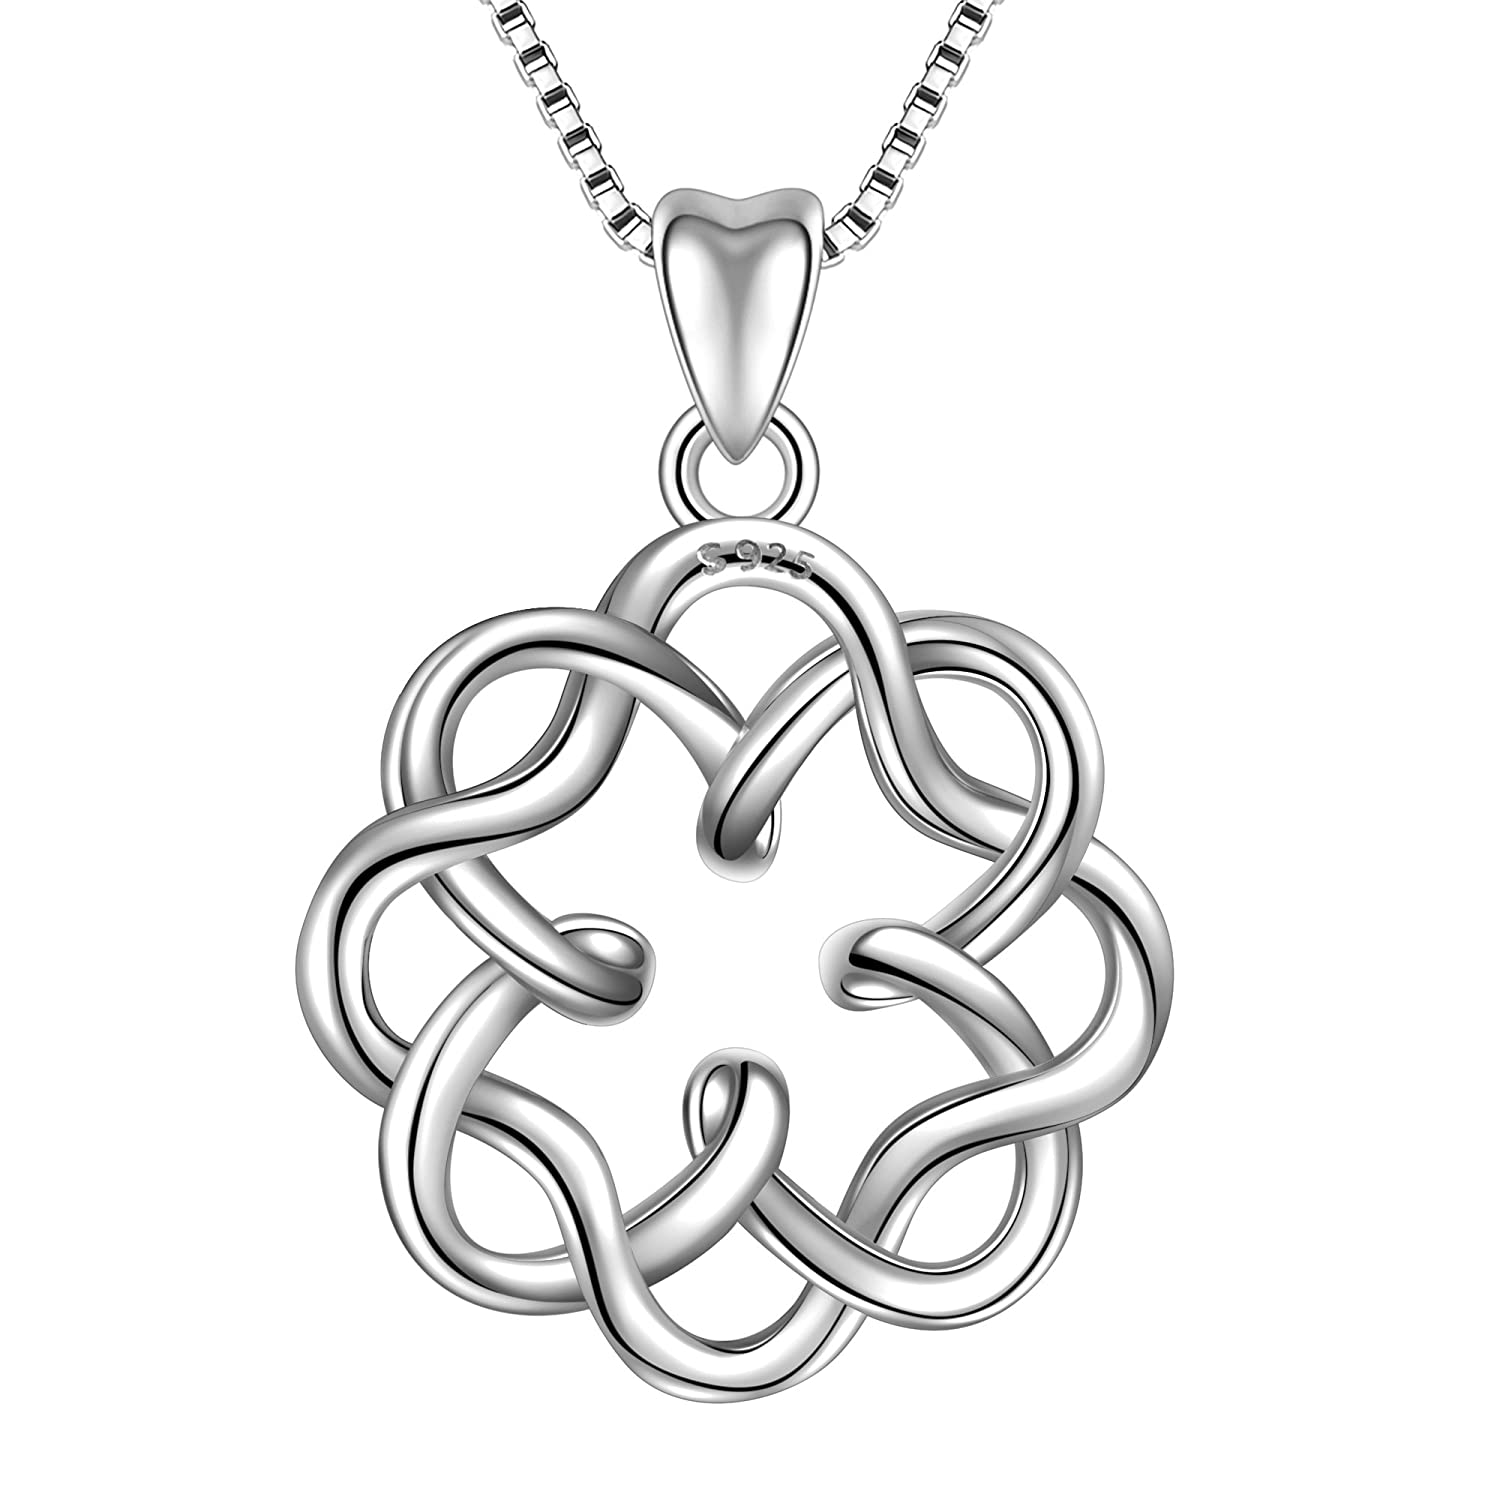 Amazon angemiel 925 sterling silver irish infinity endless amazon angemiel 925 sterling silver irish infinity endless love celtic knot vintage pendant necklace box chain 18 jewelry biocorpaavc Images